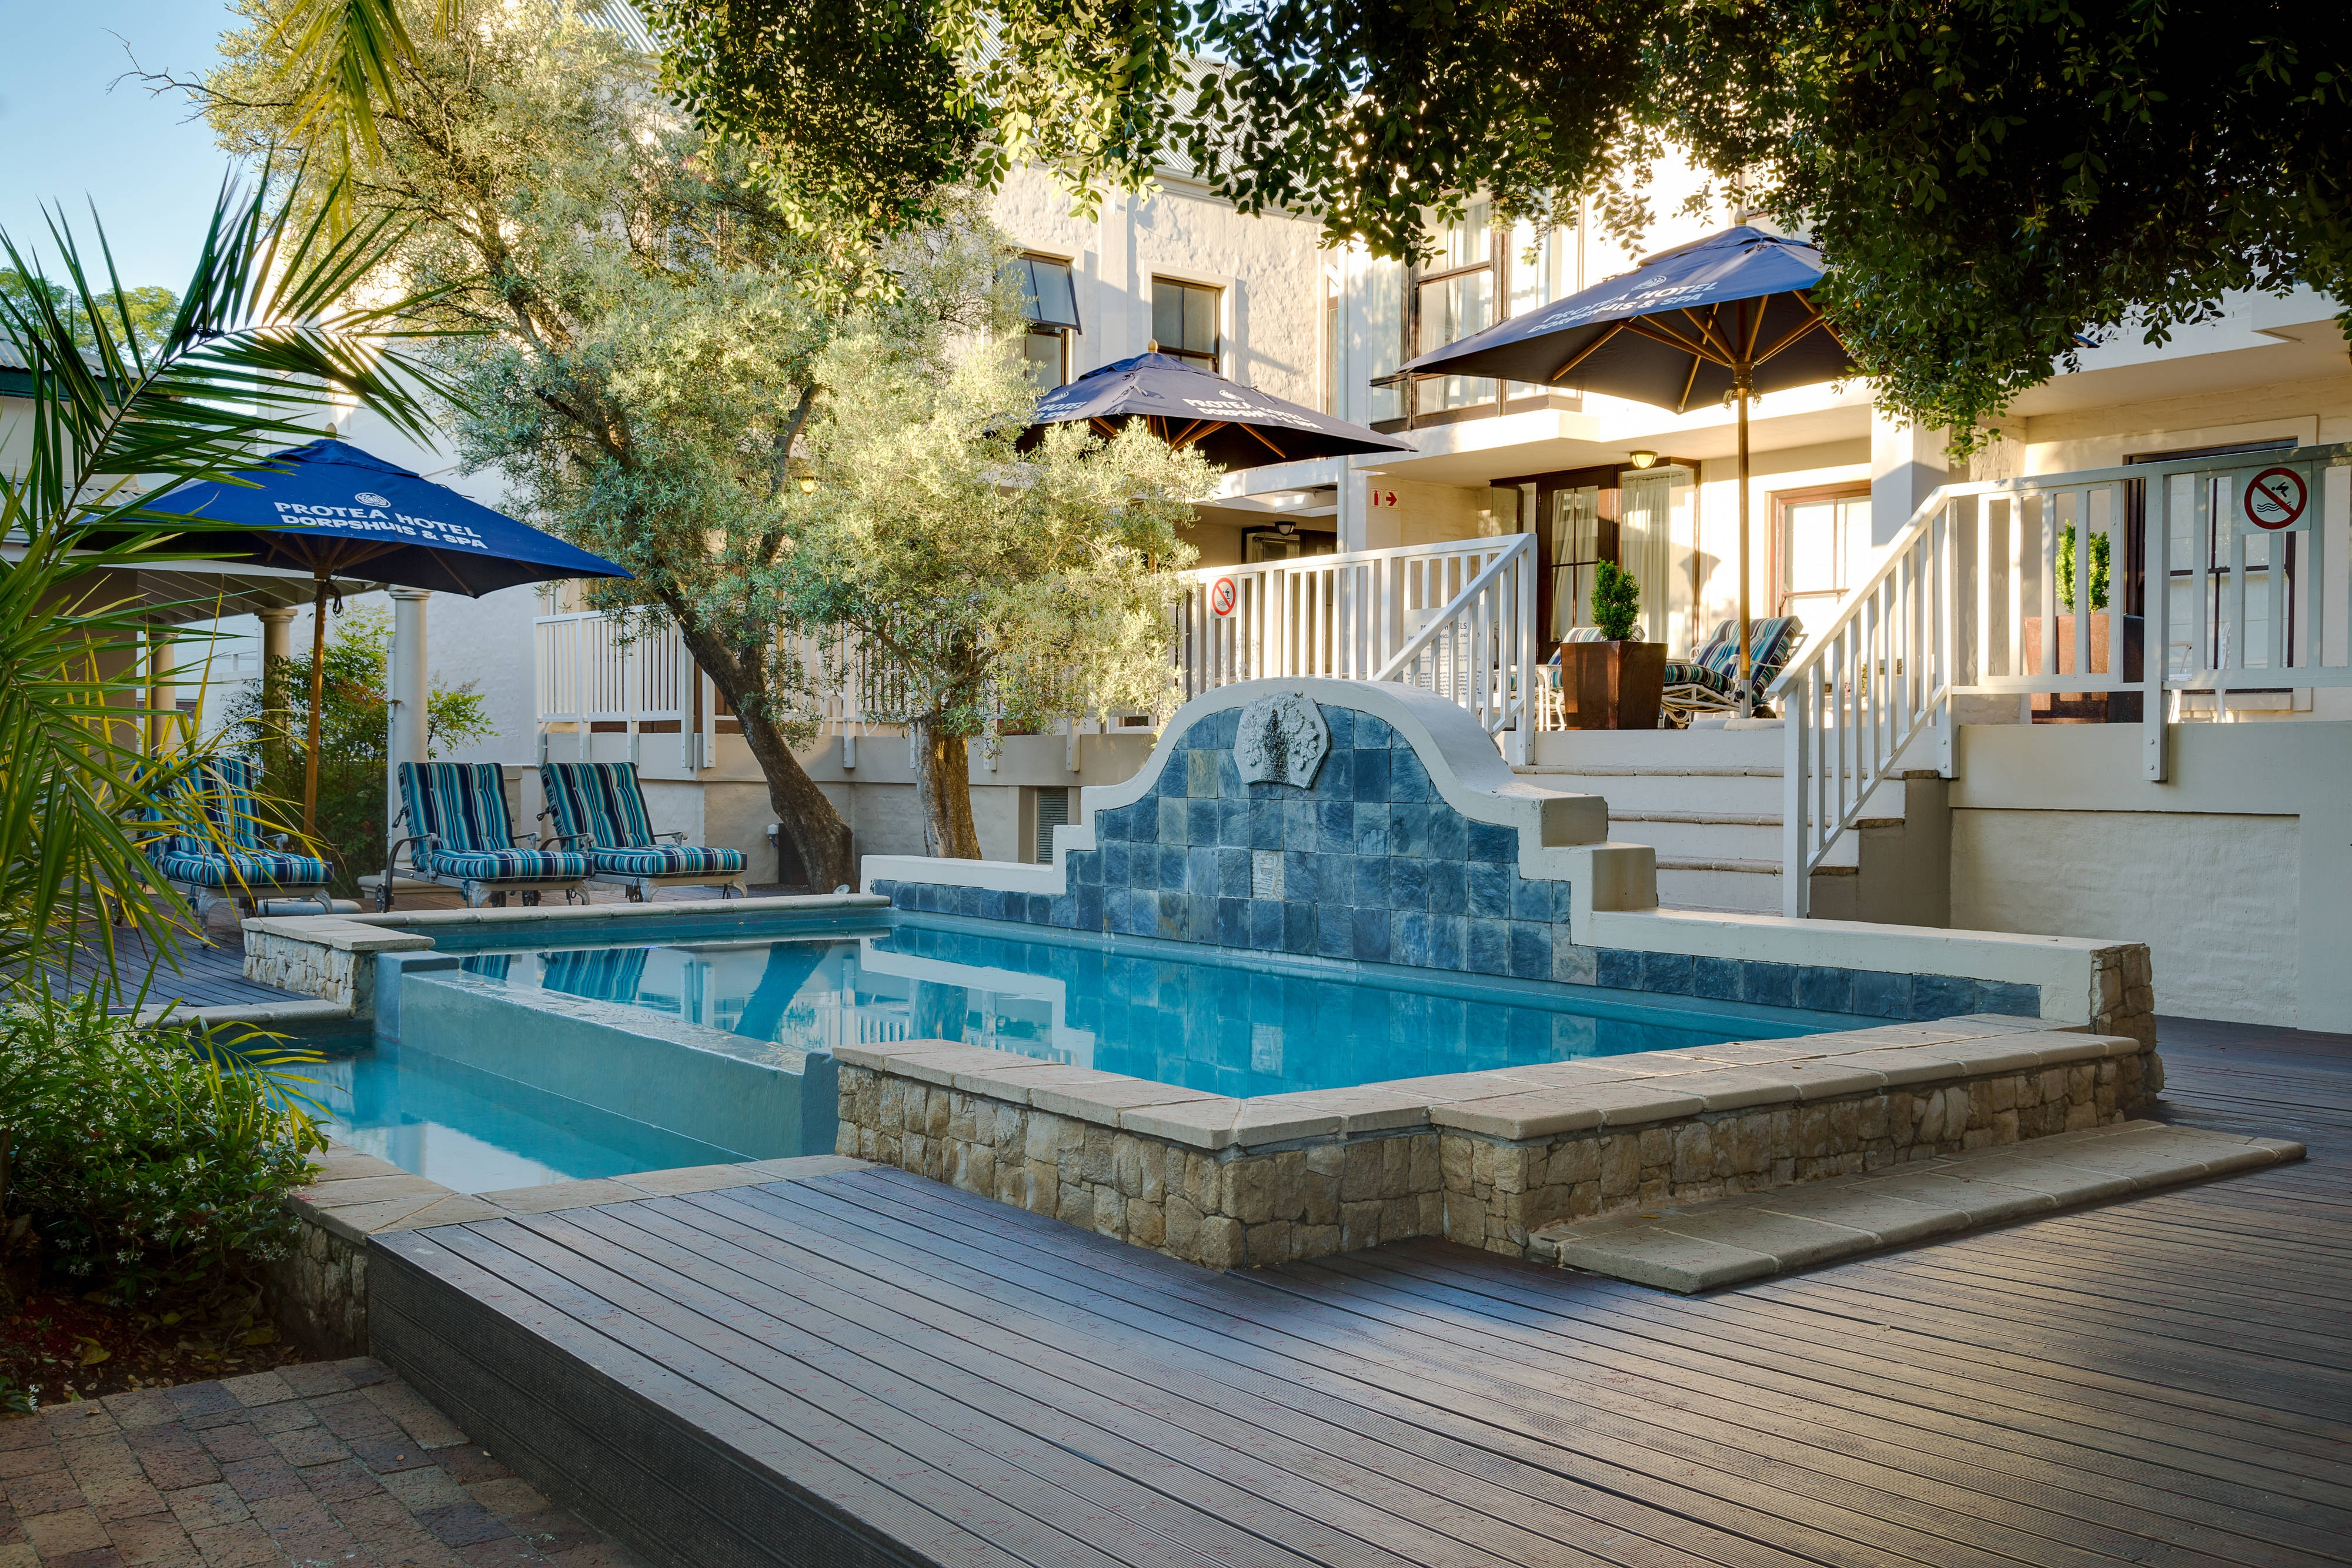 Protea Hotel Dorpshuis & Spa pool